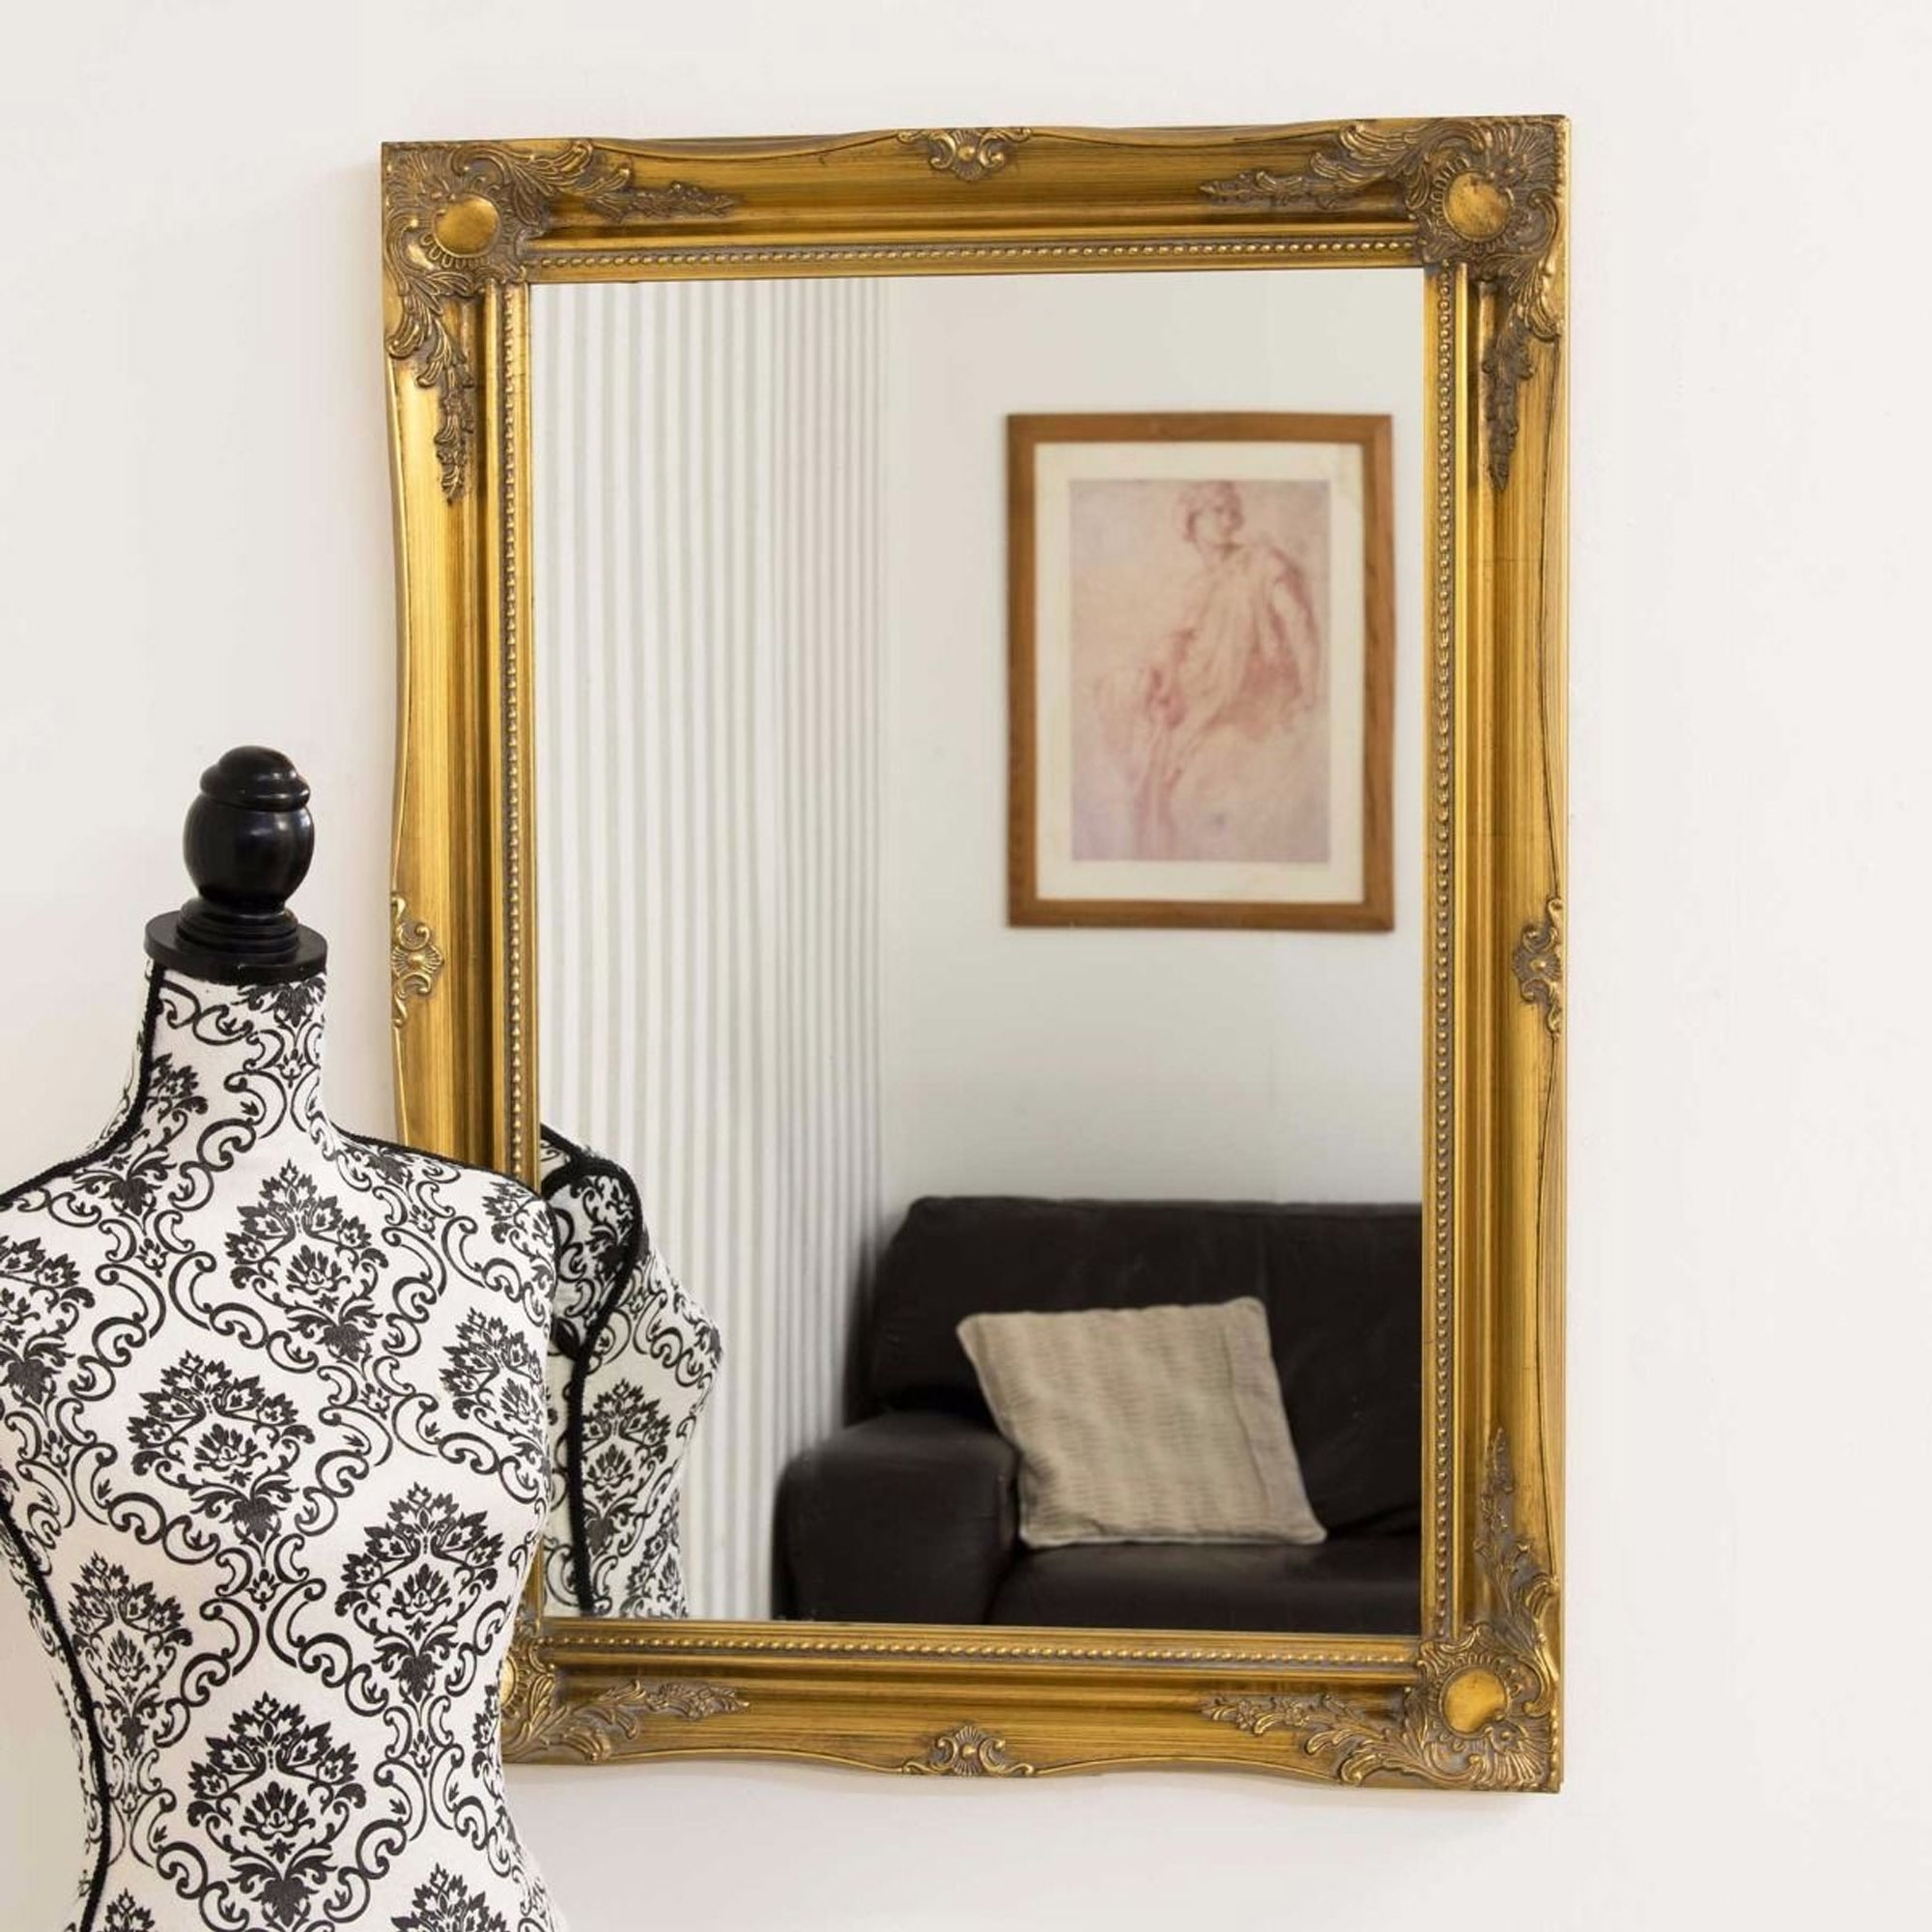 Classic Gold Ornate Antique French Style Mirror French